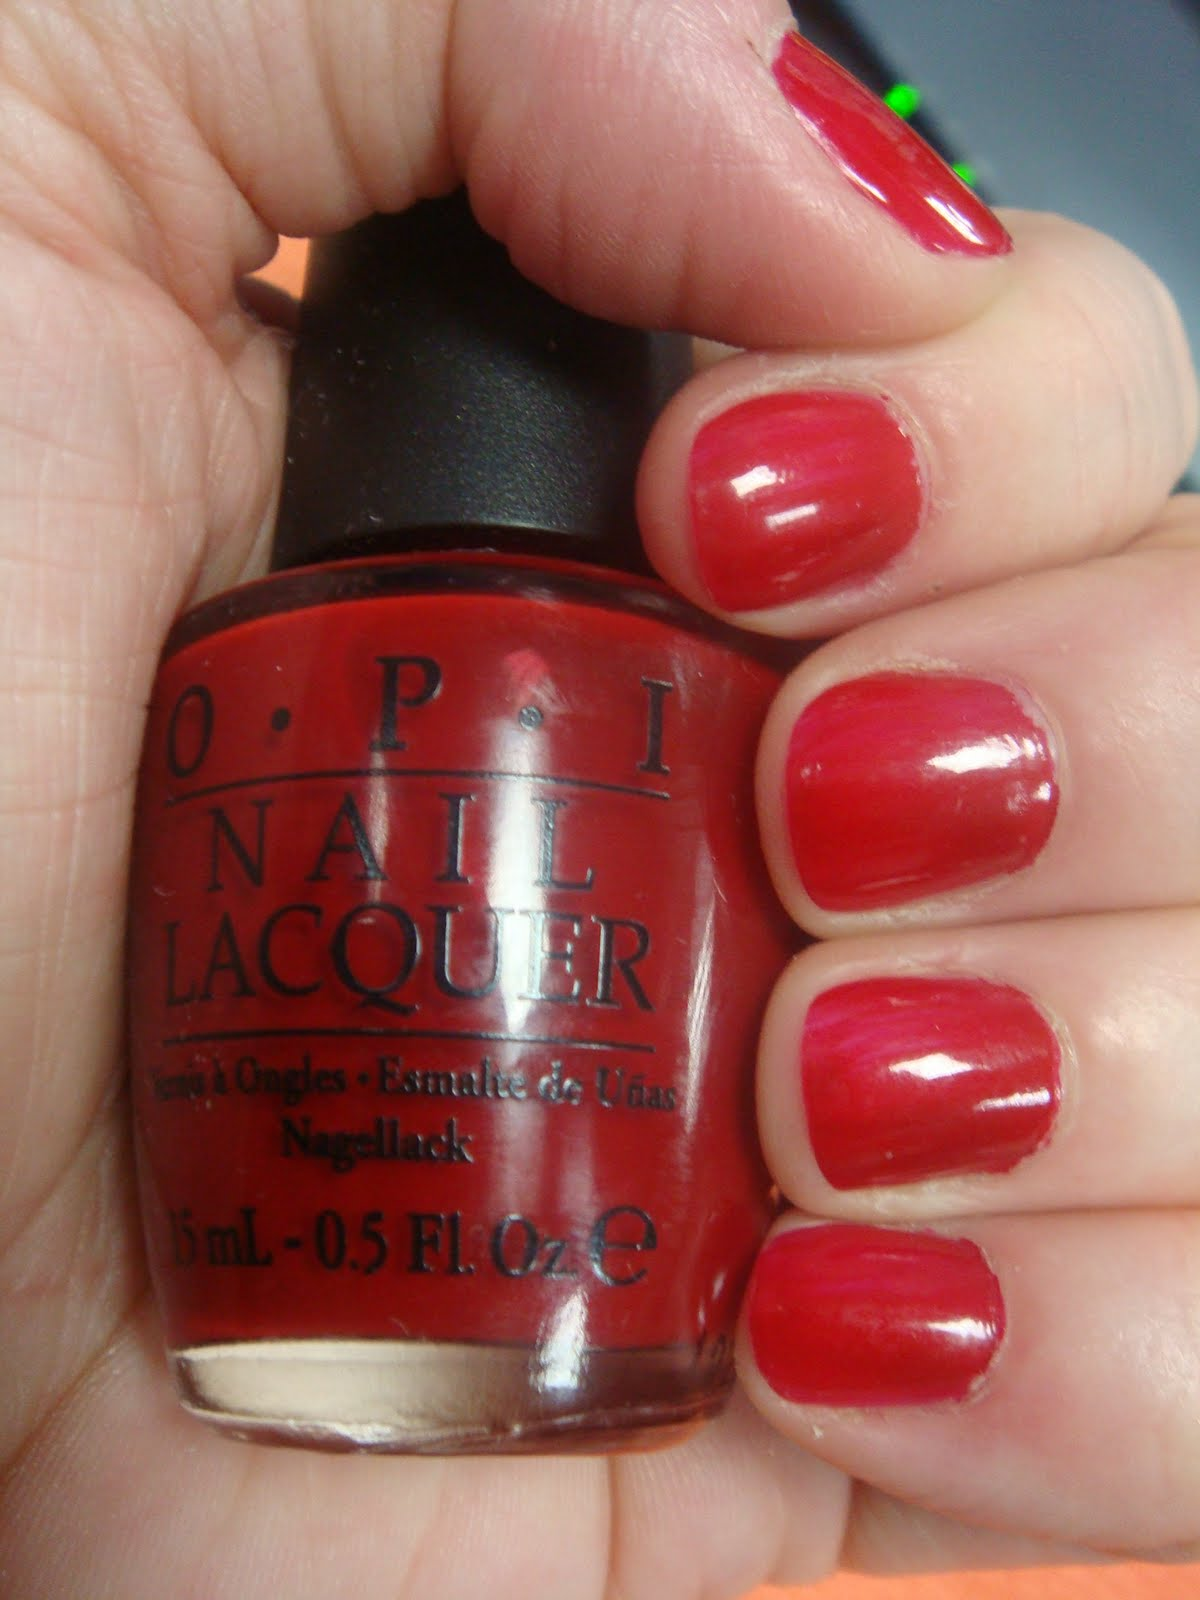 The HQ of Beauty: OPI Vodka and Caviar - Yes please!!